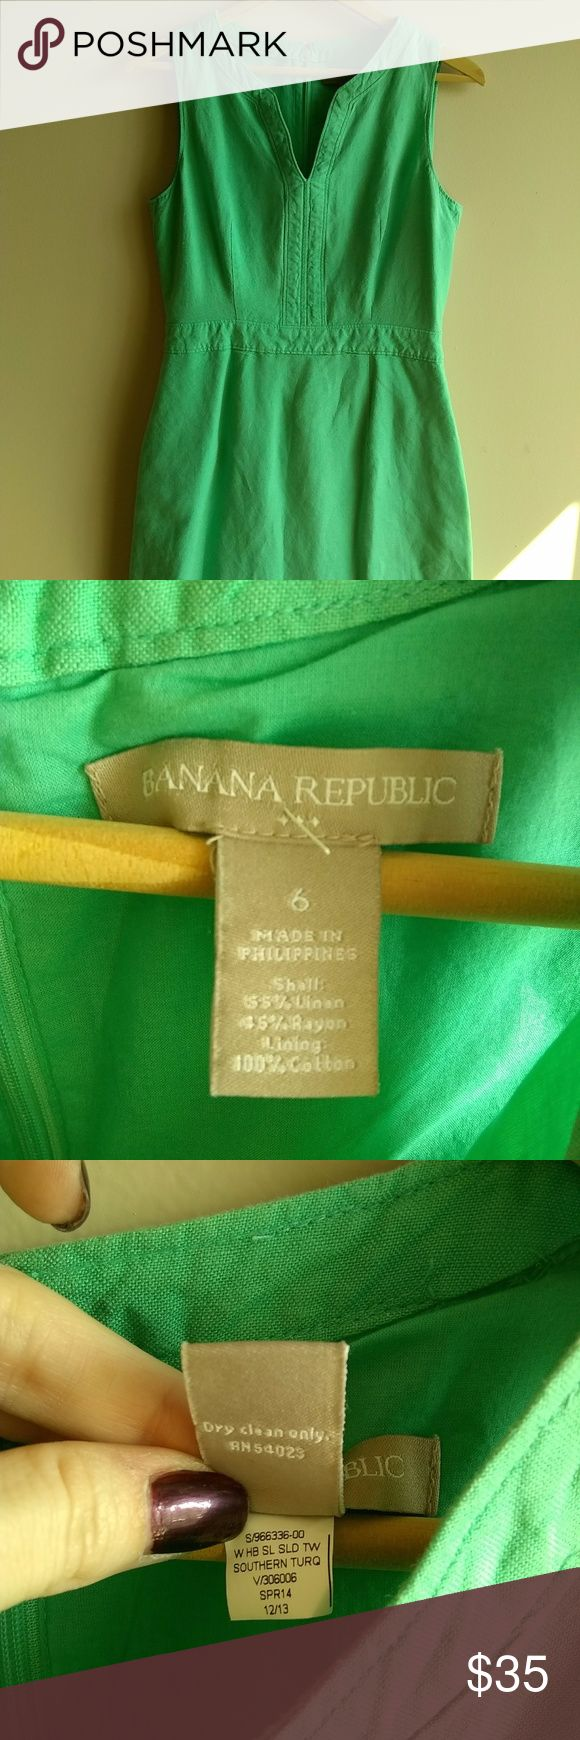 """Banana Republic Turquoise Linen Sheath Banana Republic Turquoise Linen Sleeveless Sheath Dress. Fully lined, linen blend, hidden back zipper. Tag states """"Turquoise"""", but the color is more of Aqua in person. Fits a petite frame. Great for summer weekends, casual workplaces, or tropical vacations. Banana Republic Dresses"""